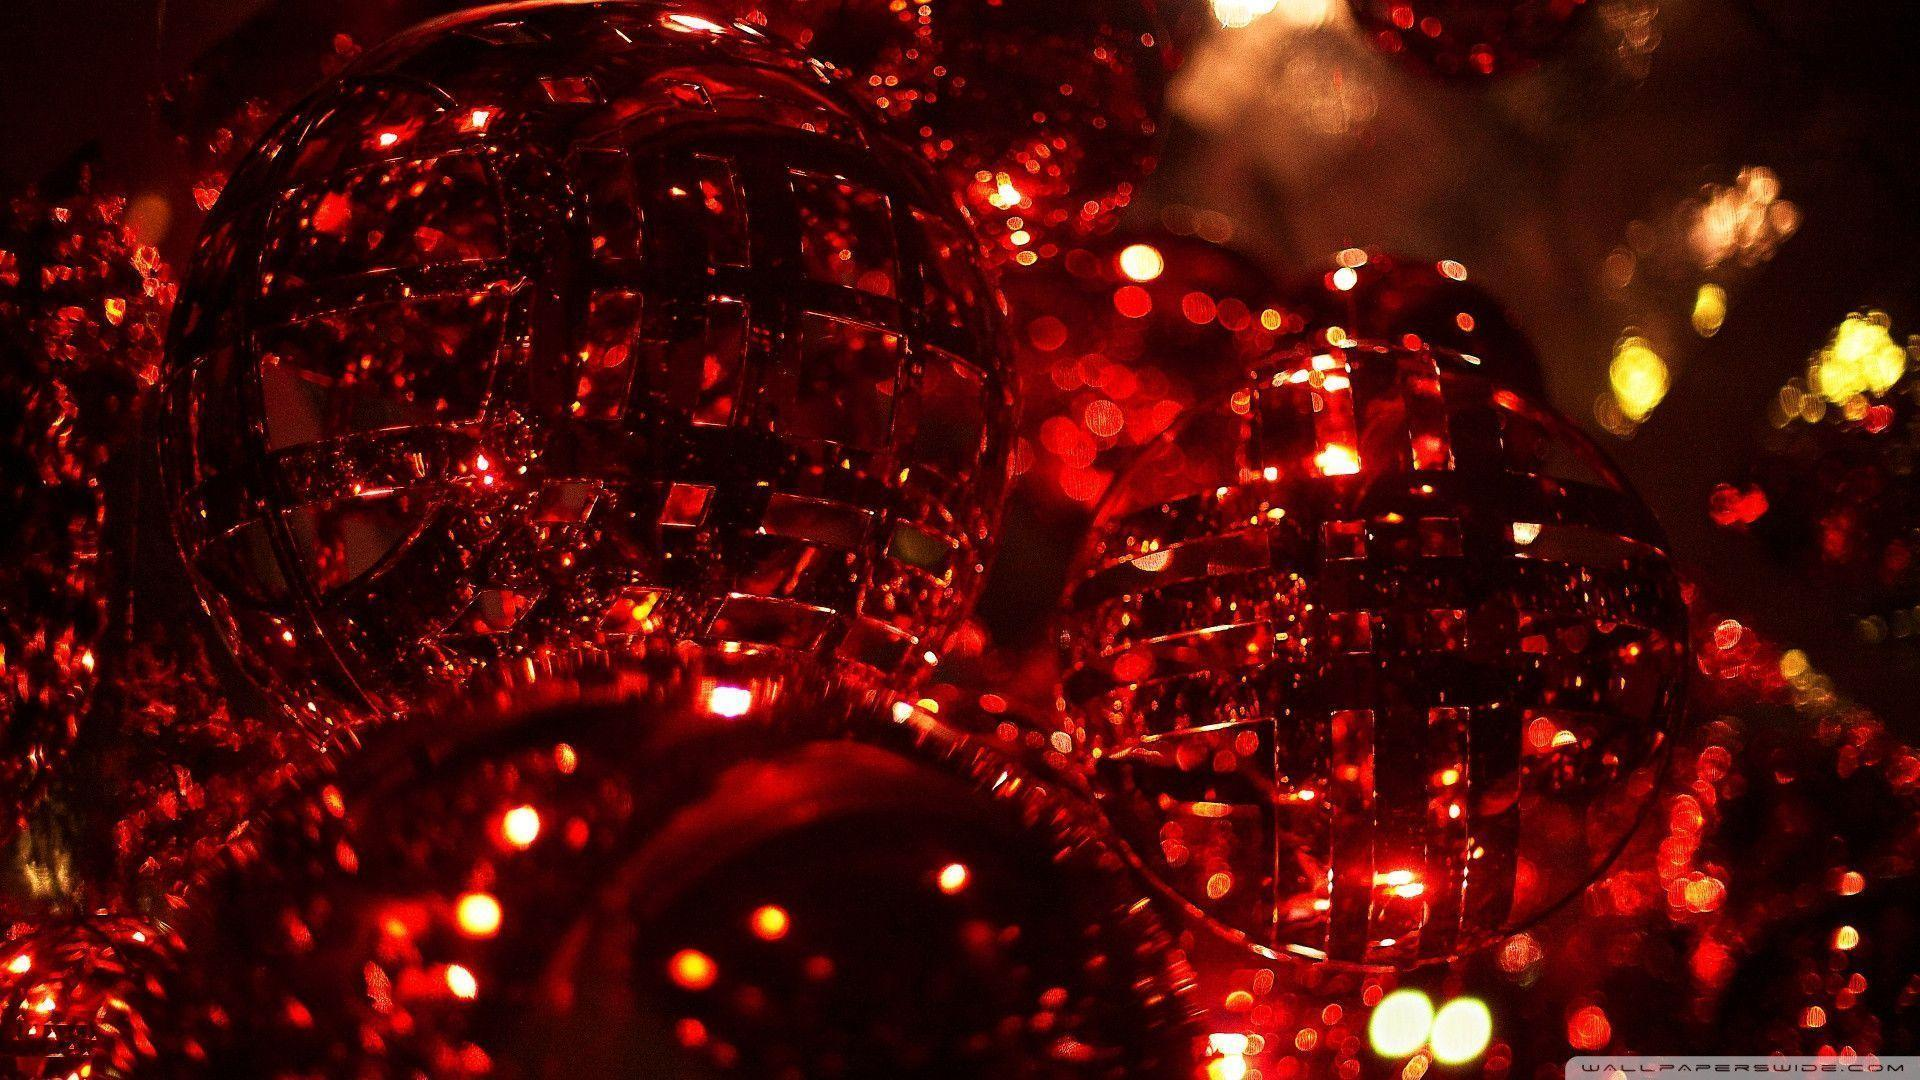 Christmas Wallpaper 1920X1080 hd image